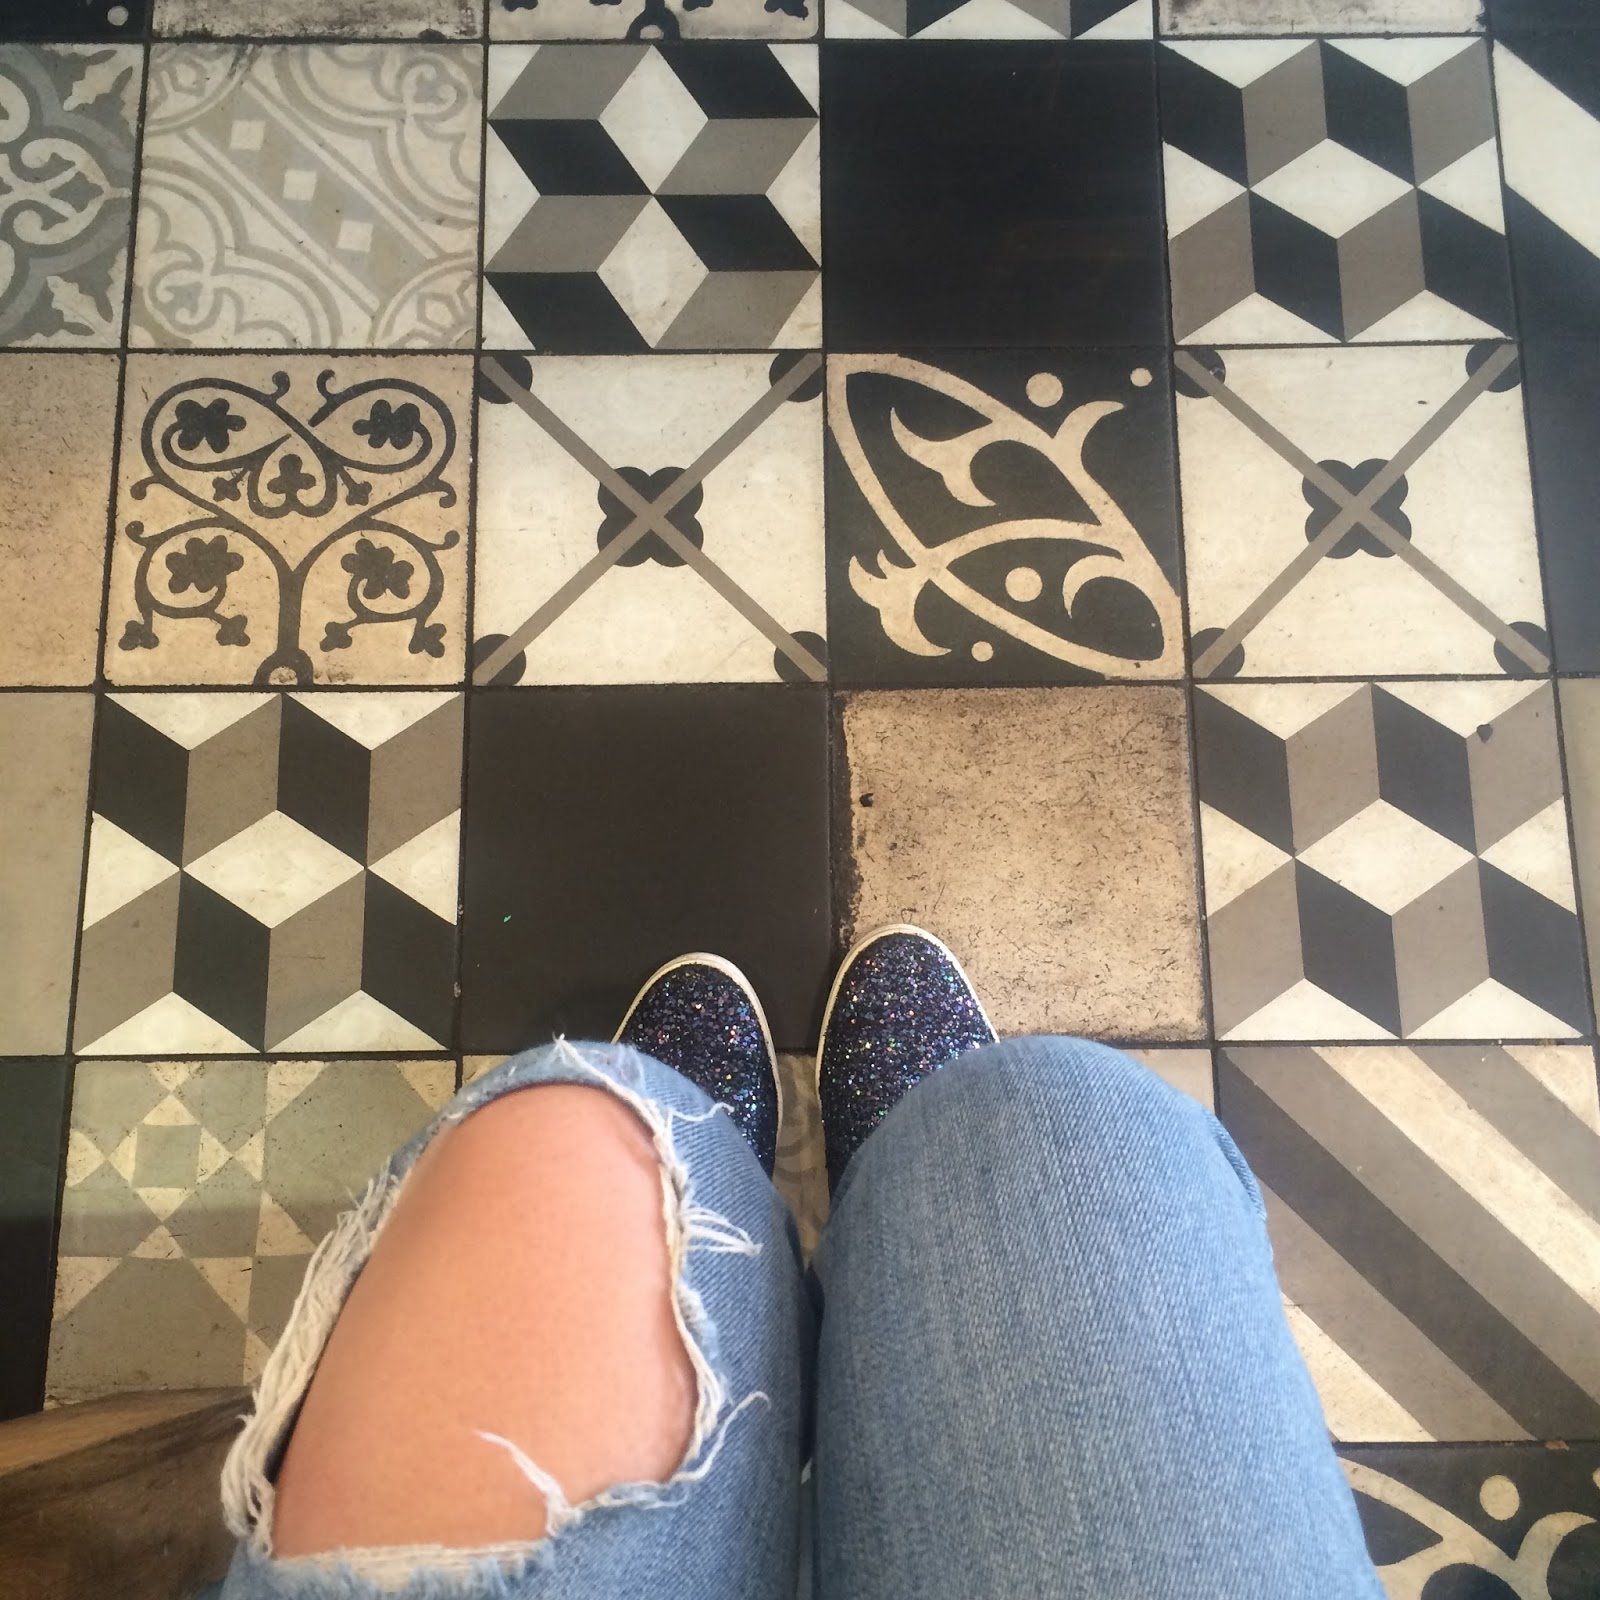 Mismatched tiled floor